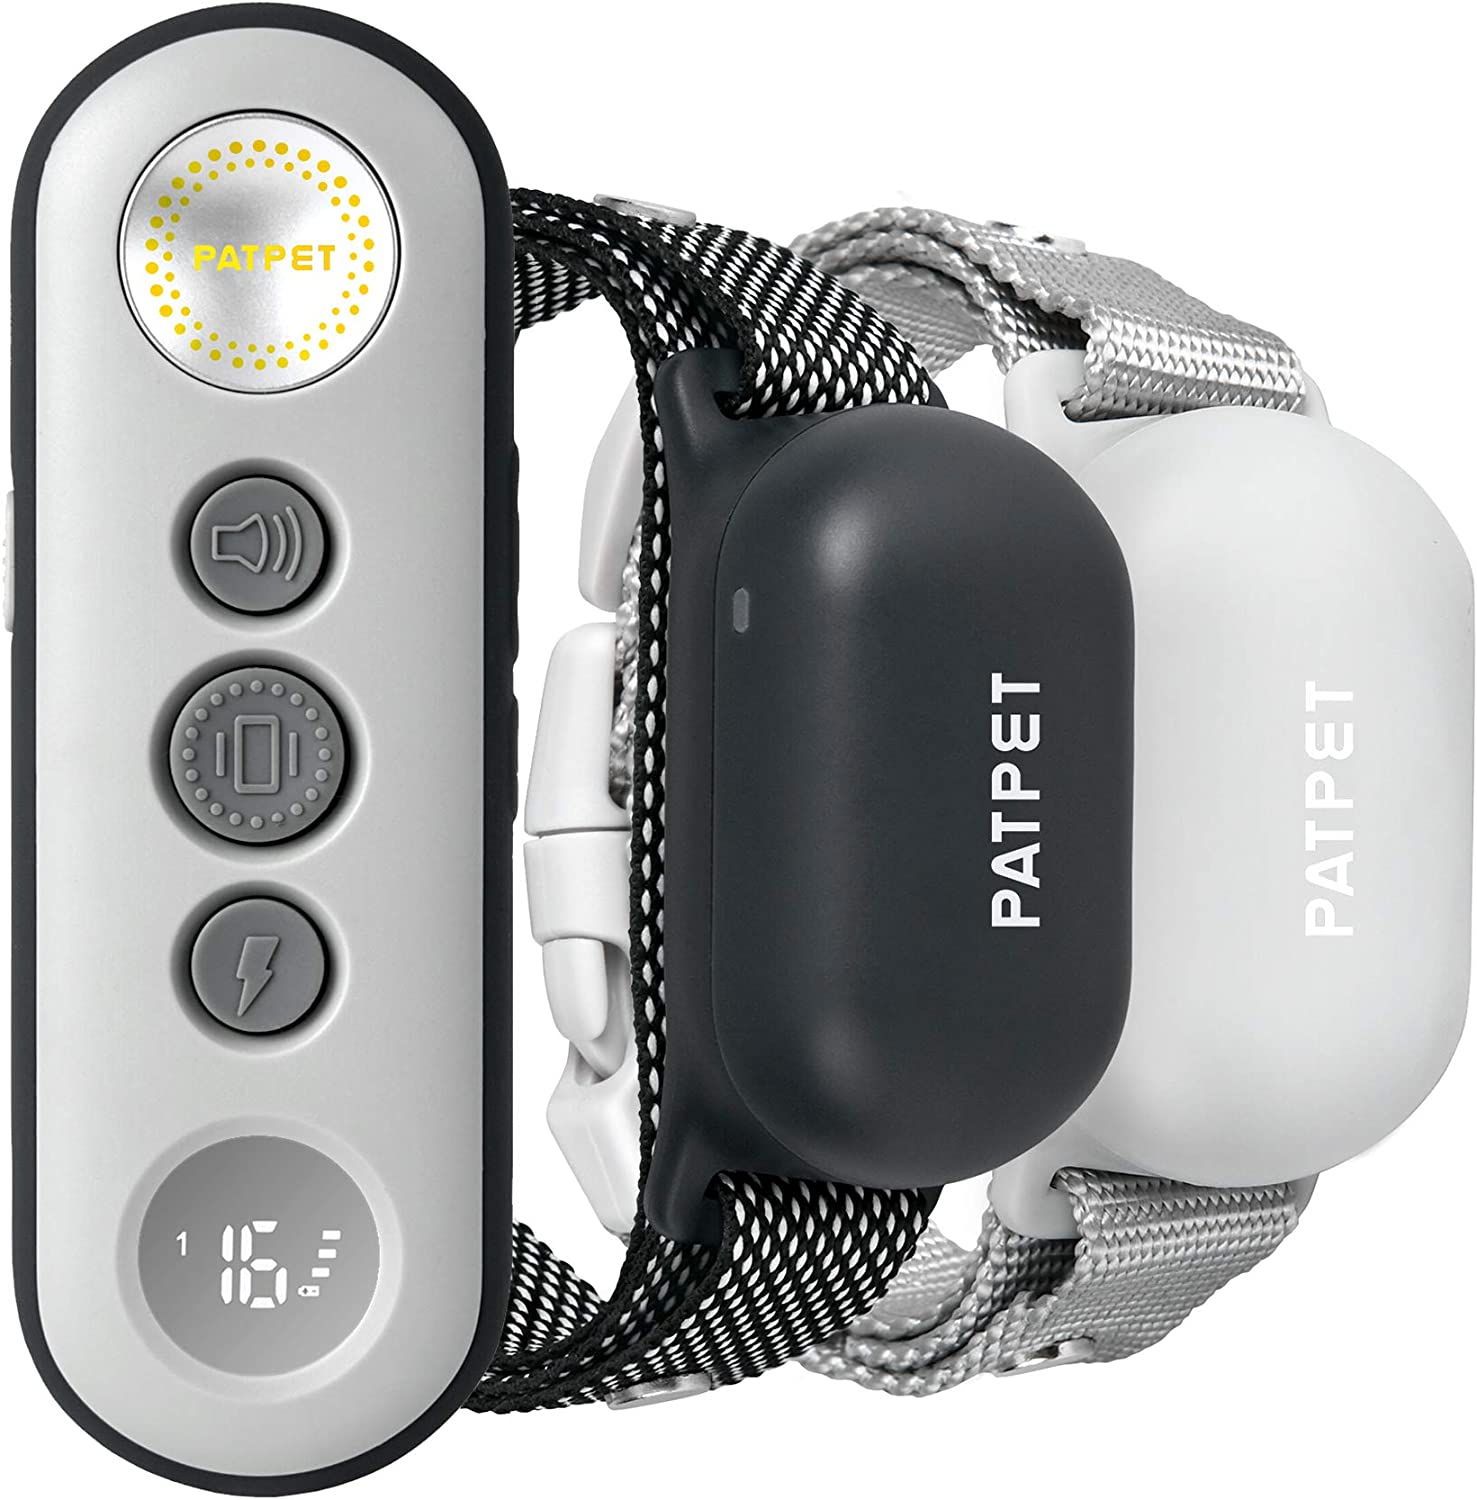 PATPET Dog Training Collar with Remote, 3000FT Rechargeable IPX7 Waterproof Dog Shock Collar for 8-110 lbs Small Medium Large 2 Dogs(2-Pack)